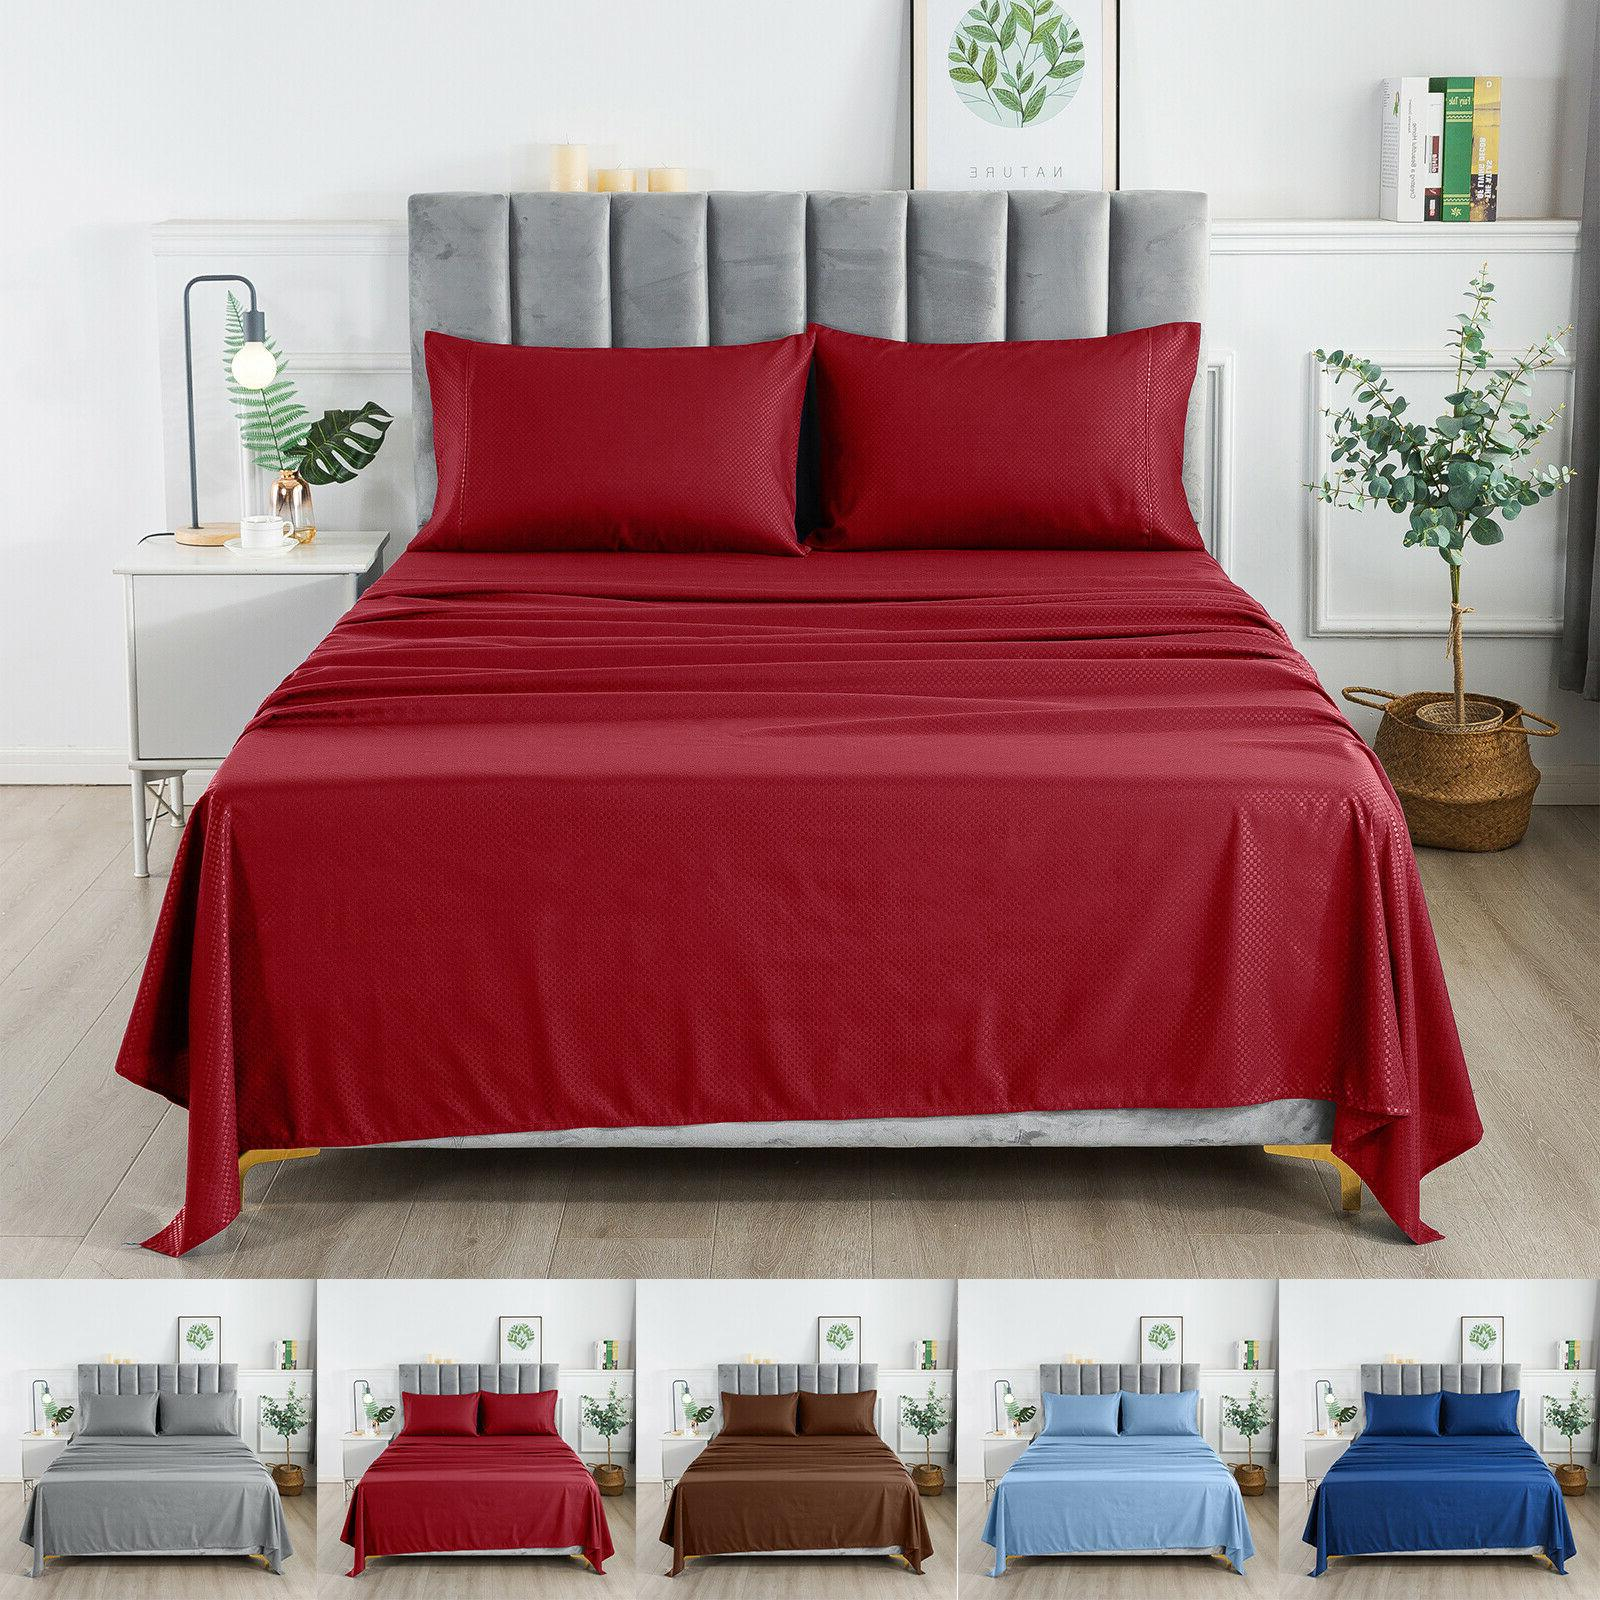 1800 Series Egyptian Checkered Bed Sheet 4 Piece Set - Micro